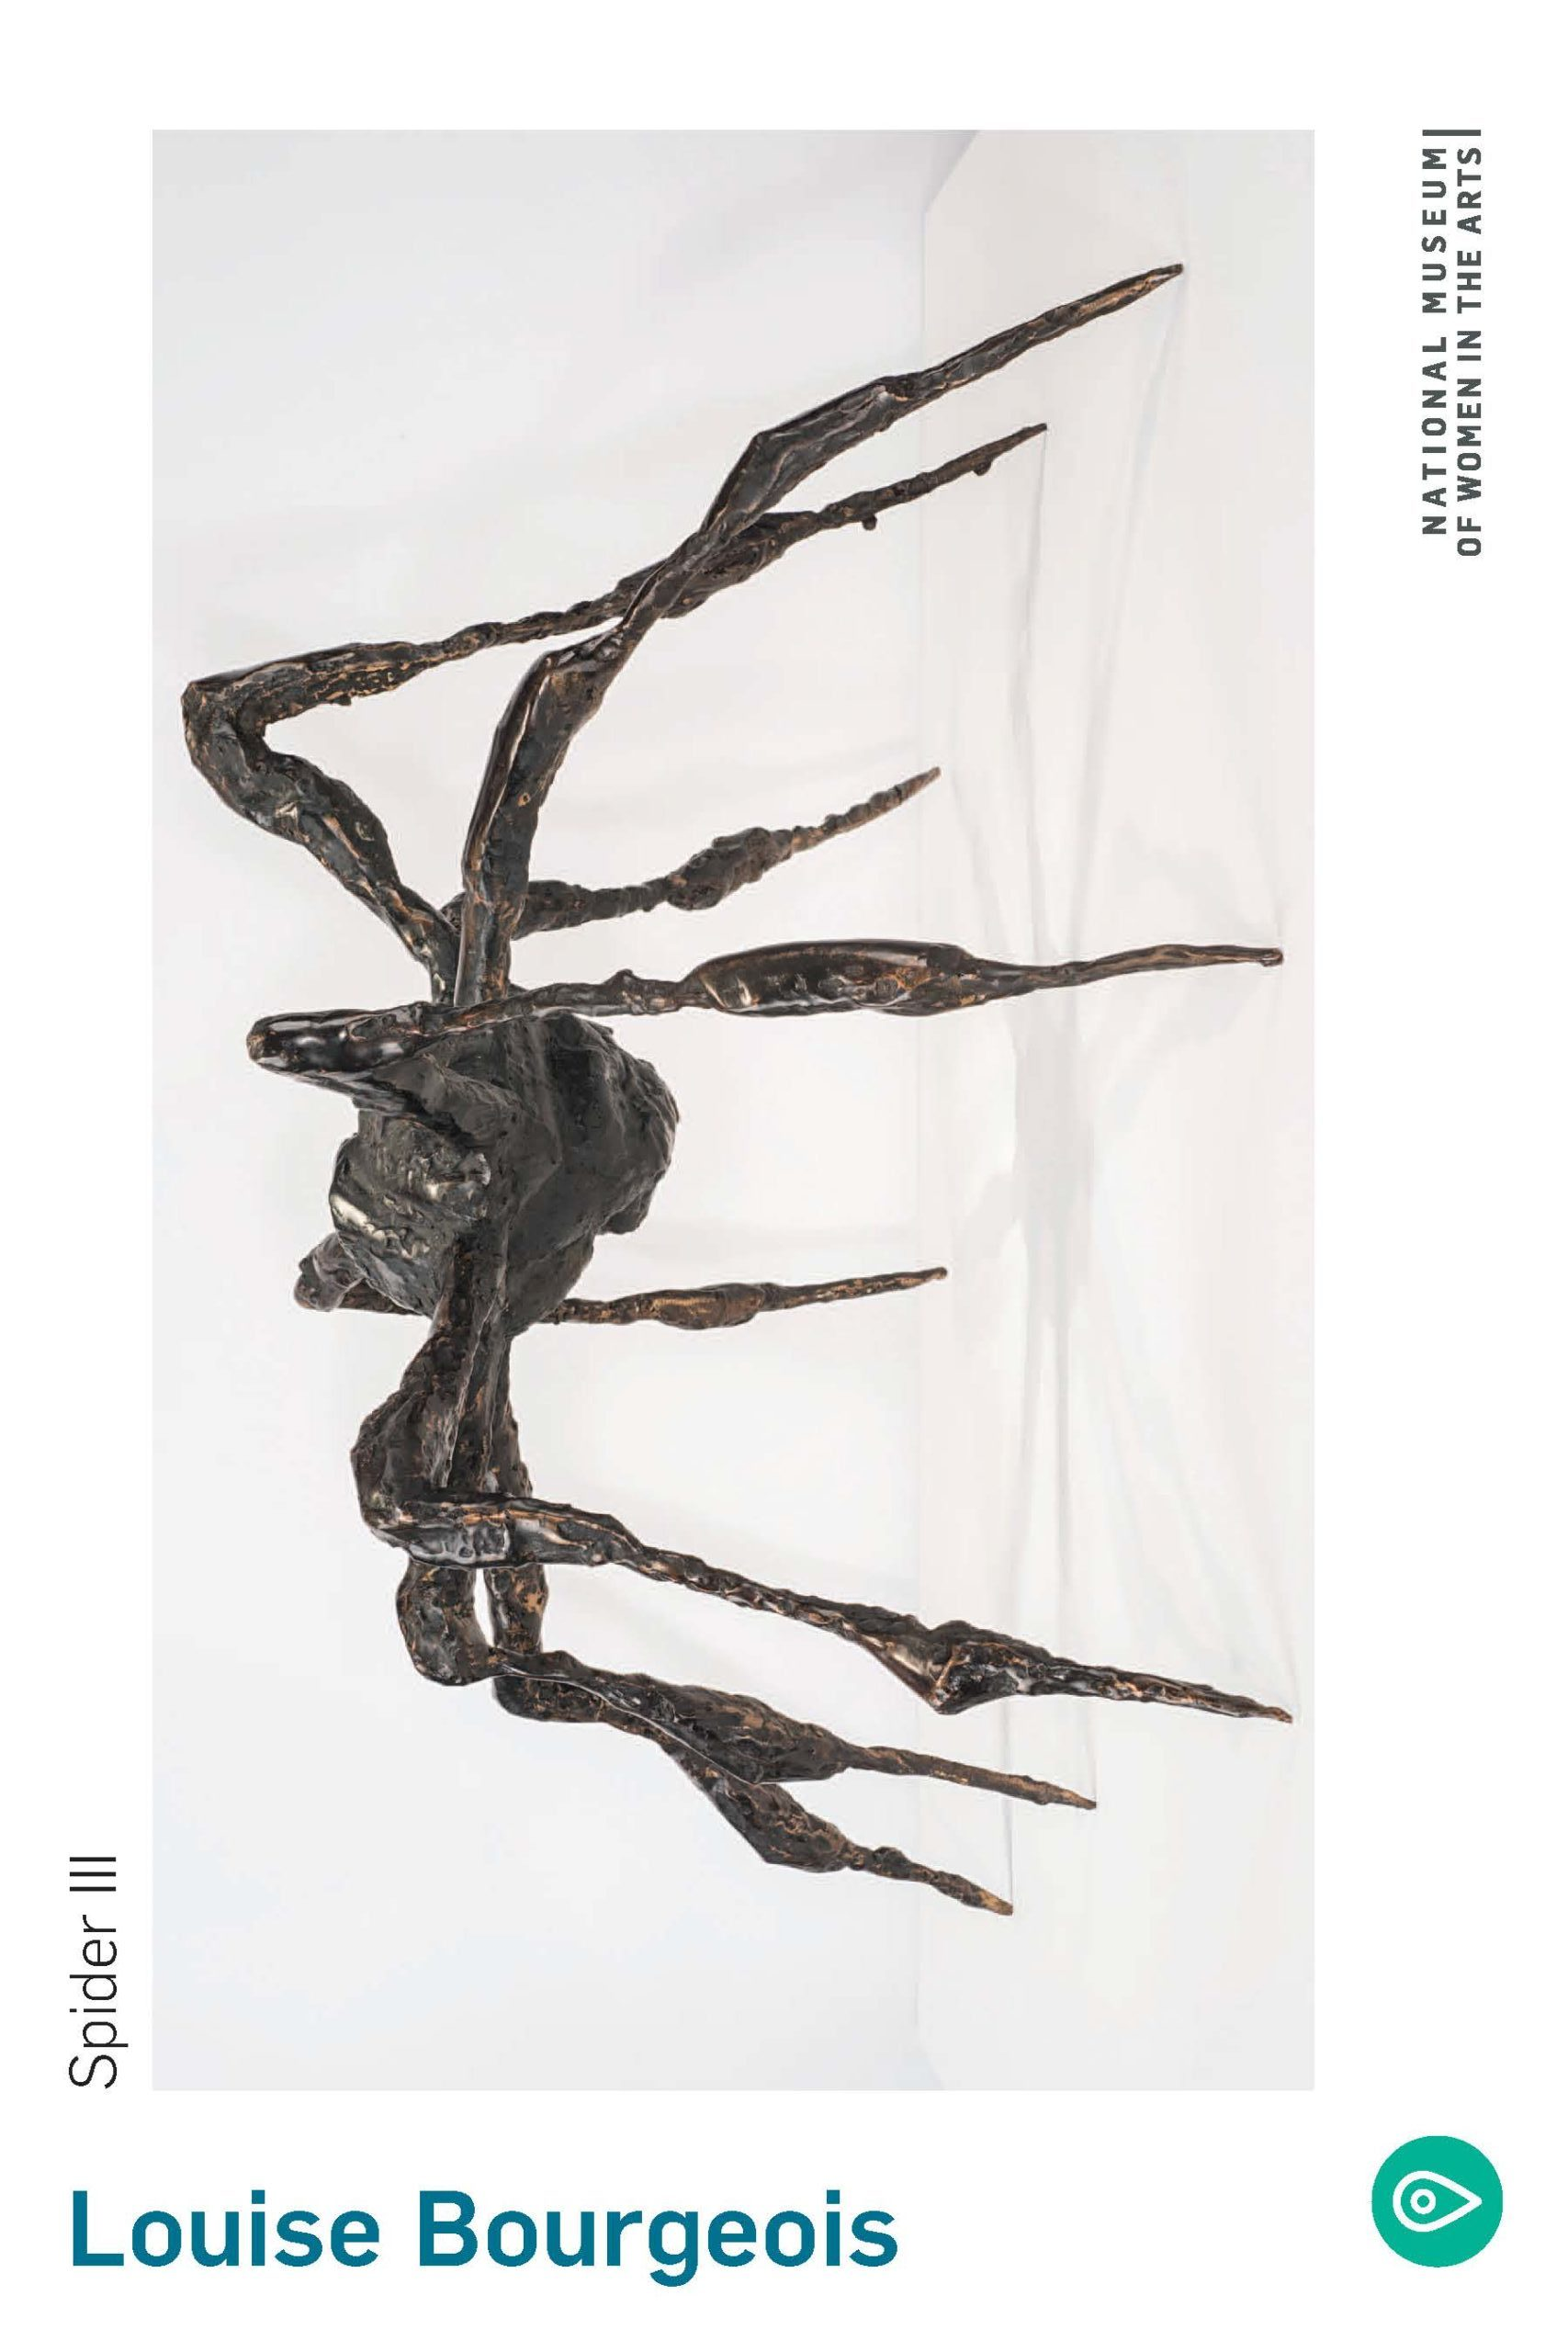 Facts about the artist Louise Bourgeois and her sculpture 'Spider III' (PDF)